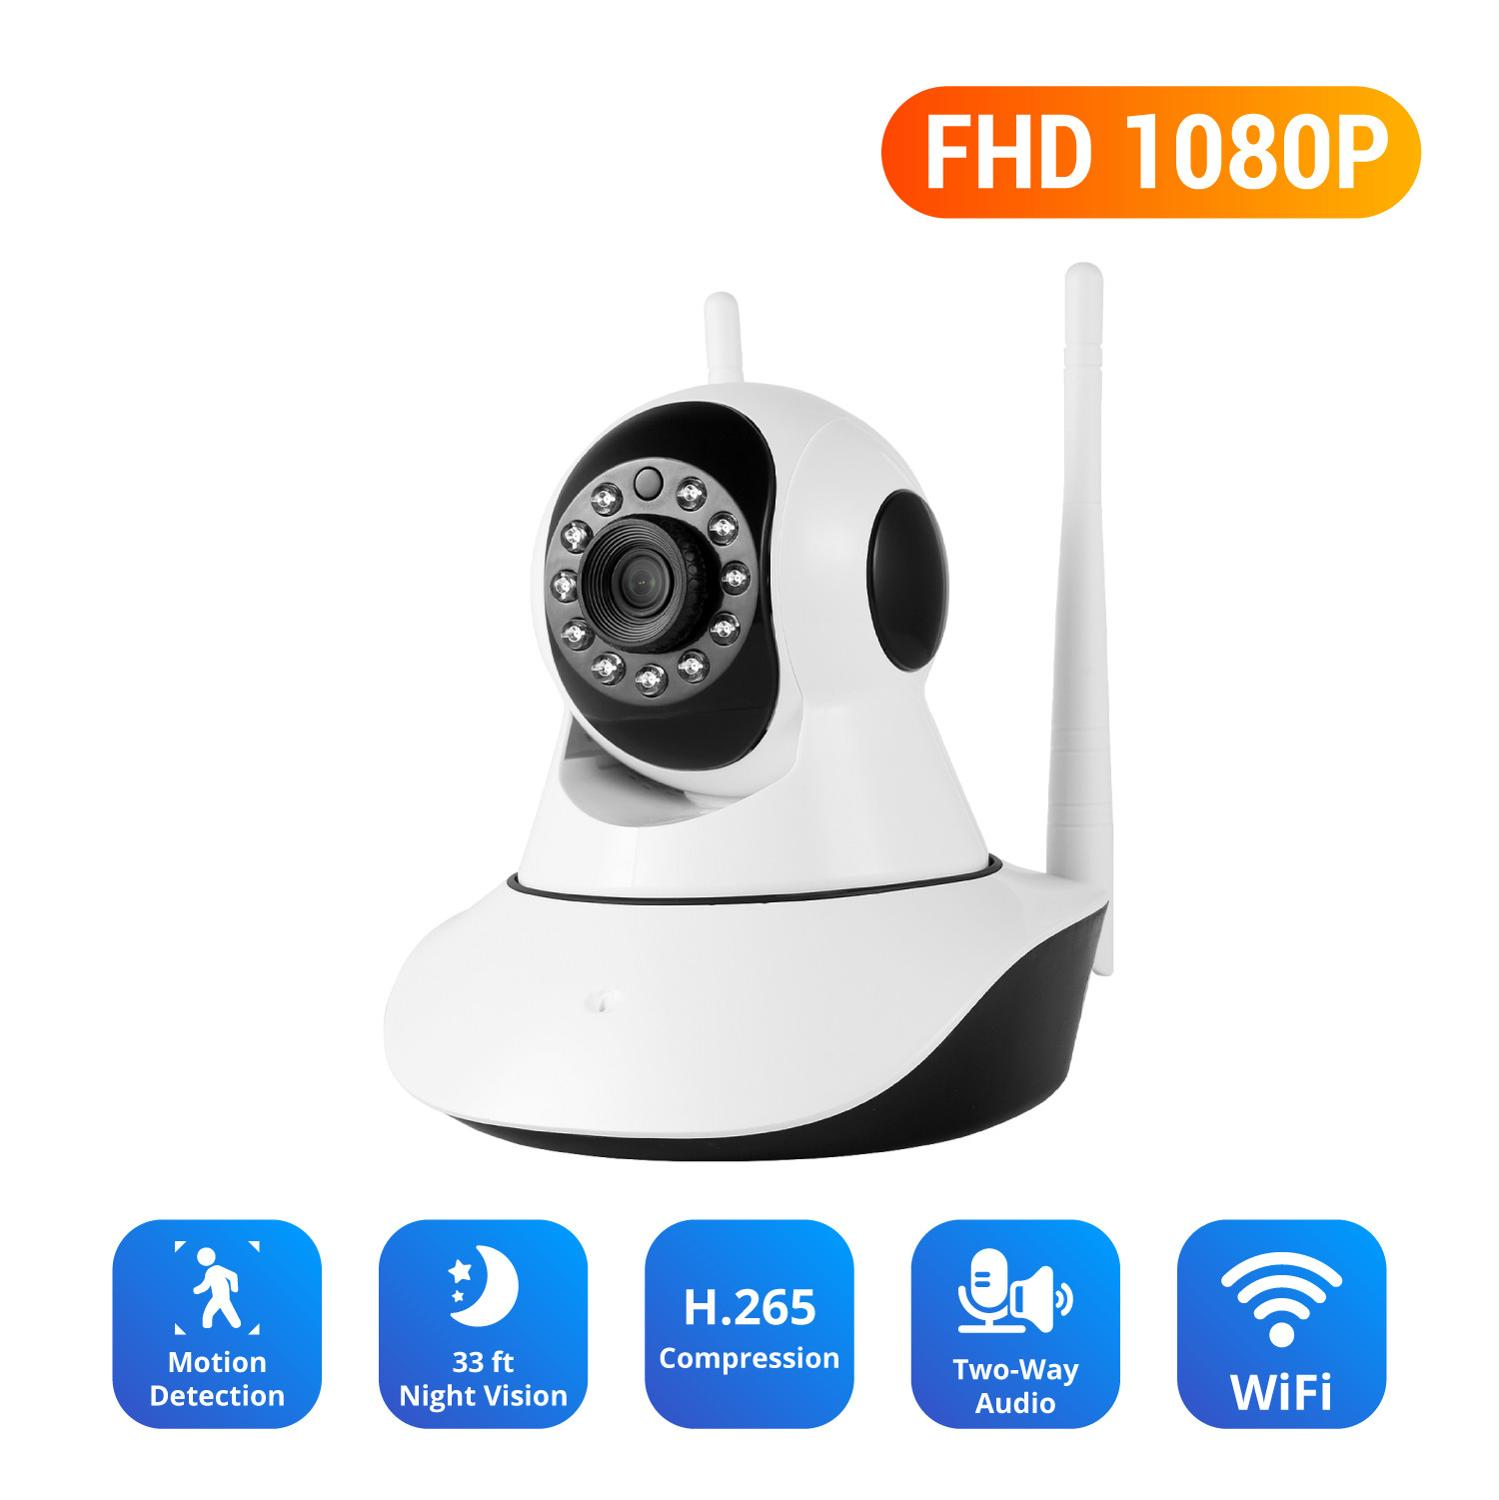 NEW Sale 1080P FHD IP Wireless Video Security Camera Two Way Audio Baby Monitor Day Night Monitoring WIFI Surveillance CCTV Cam